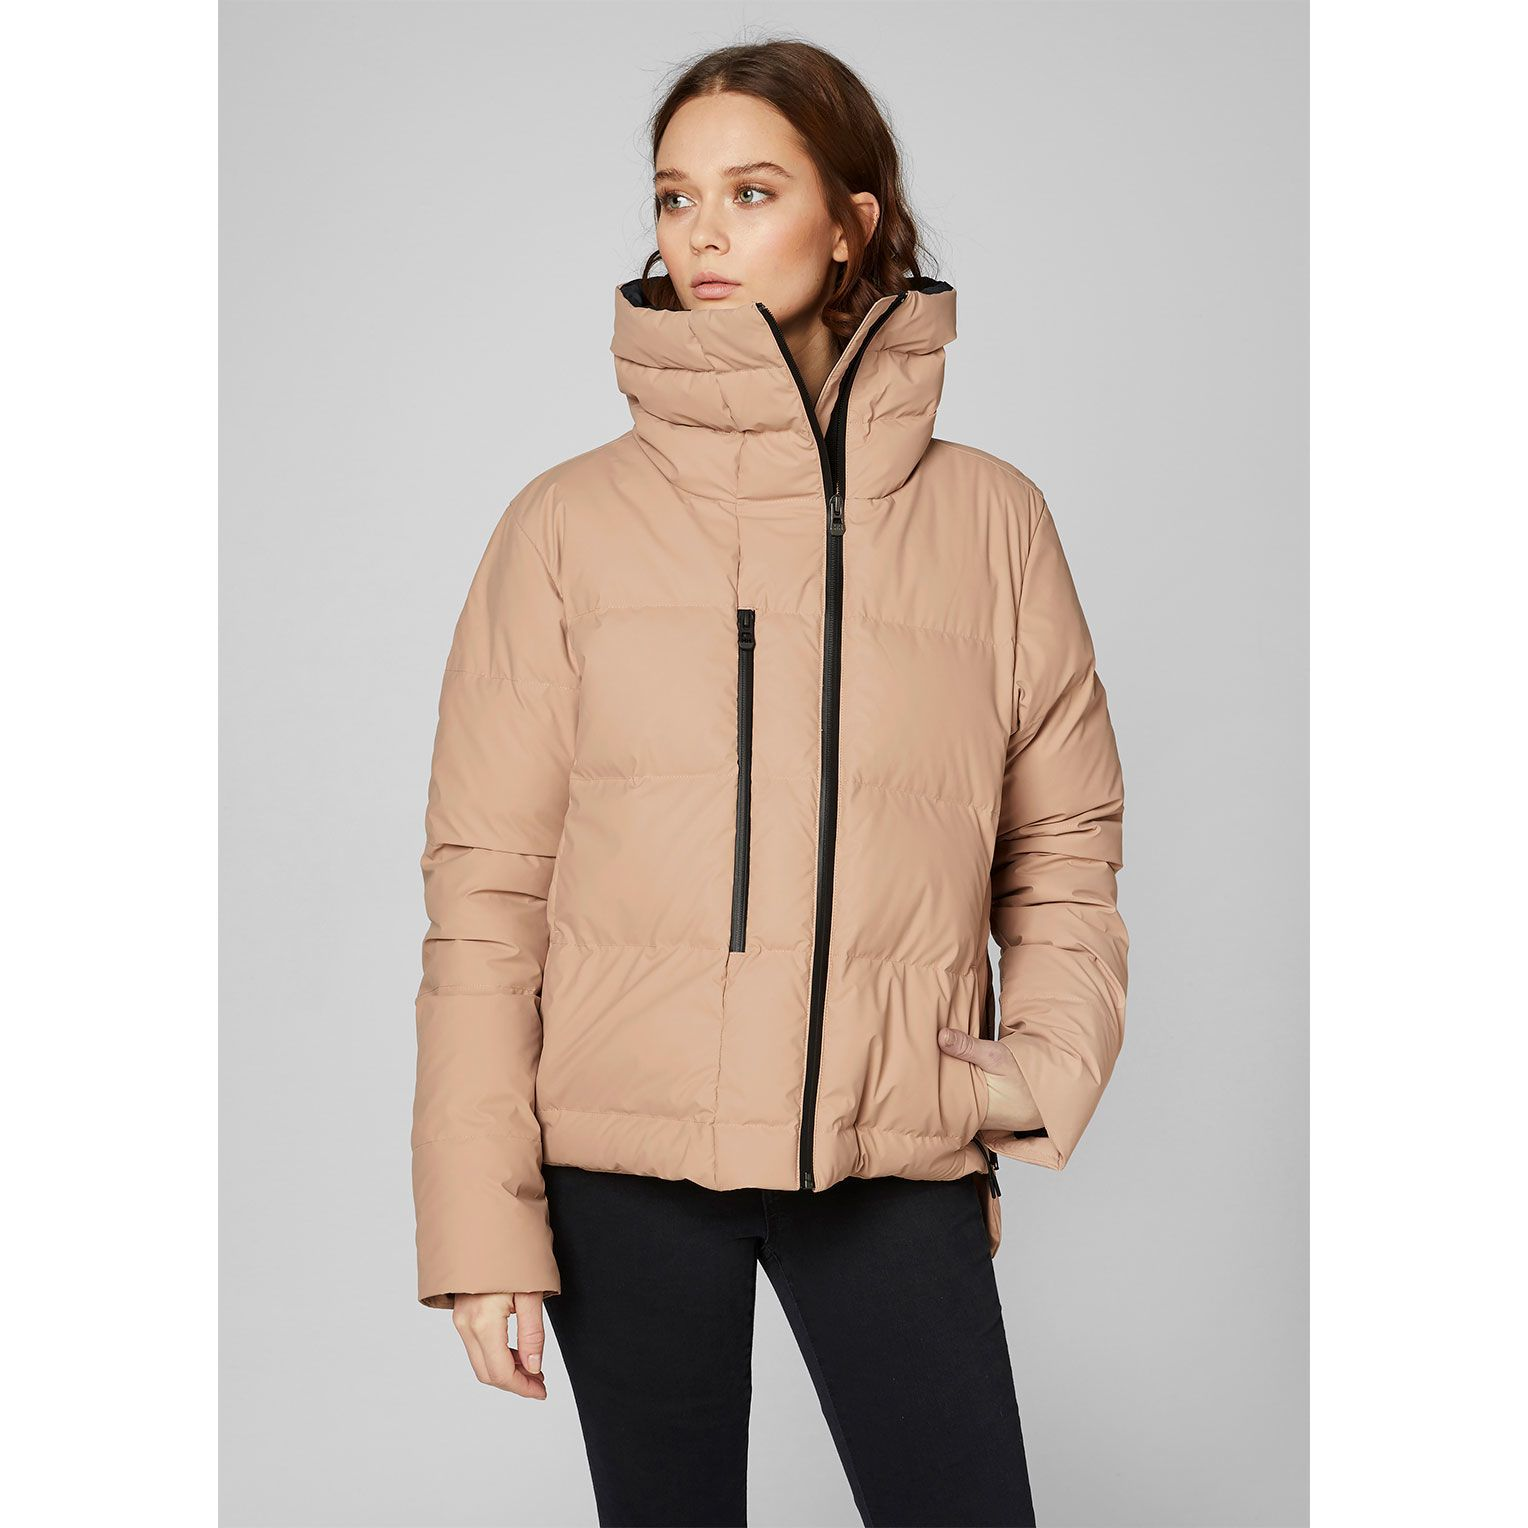 W beloved down jacket | Jackets, Down jacket, Jackets for ...